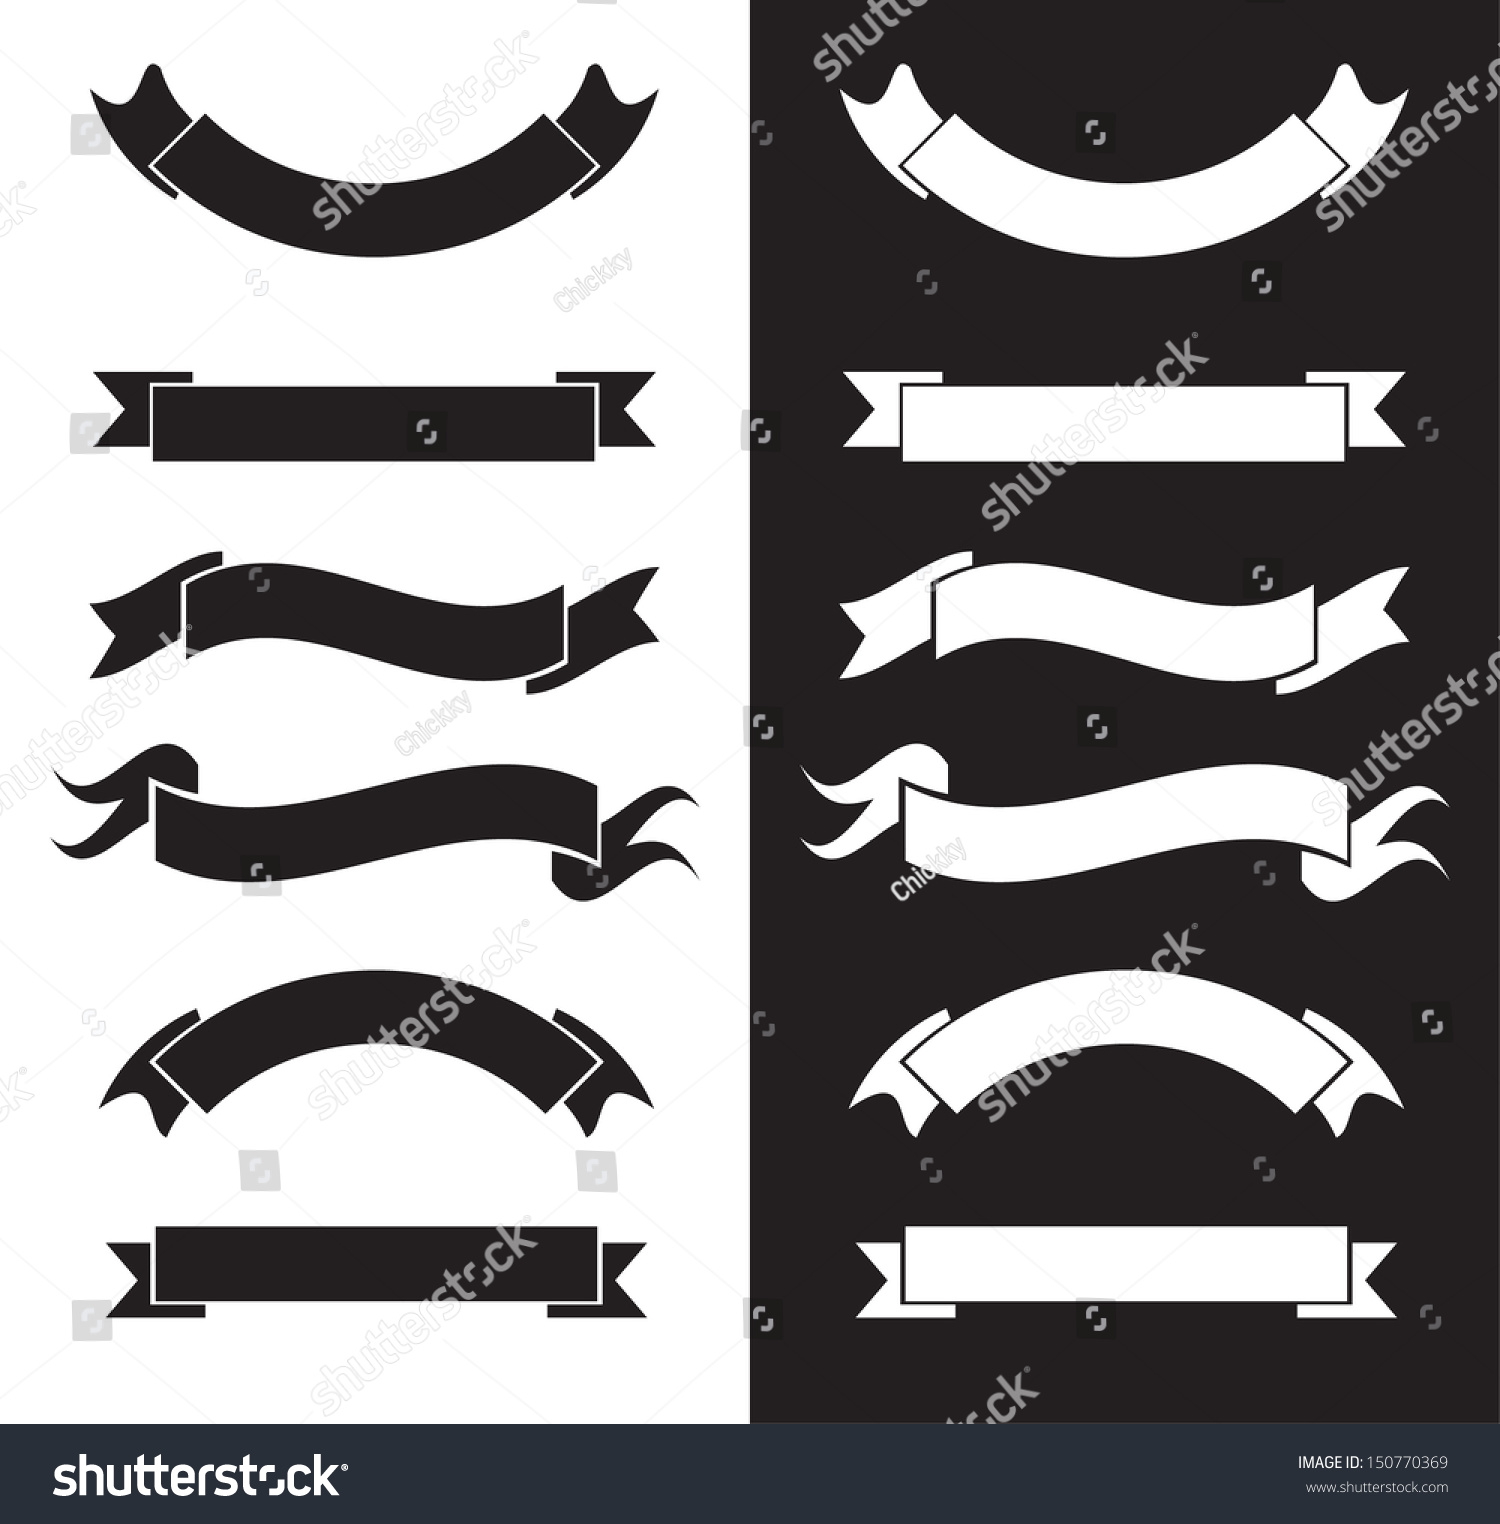 Black White Ribbons Stock Vector 150770369 - Shutterstock